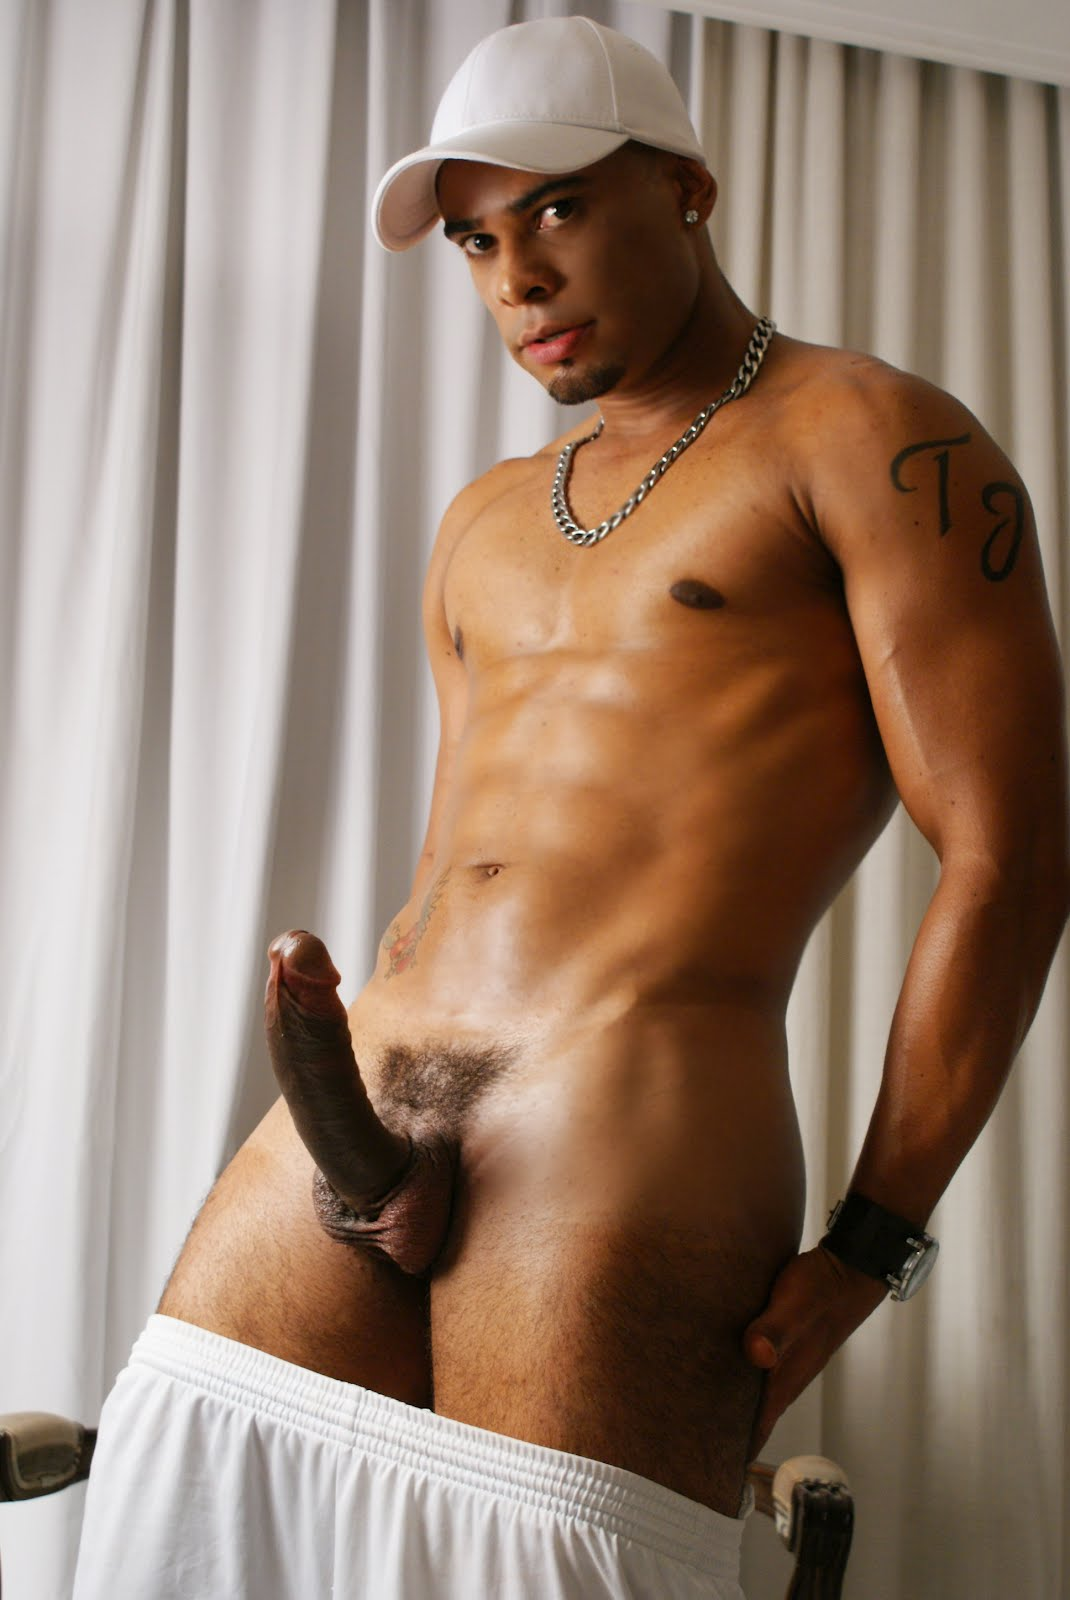 xxx gay español gay escorts brazil